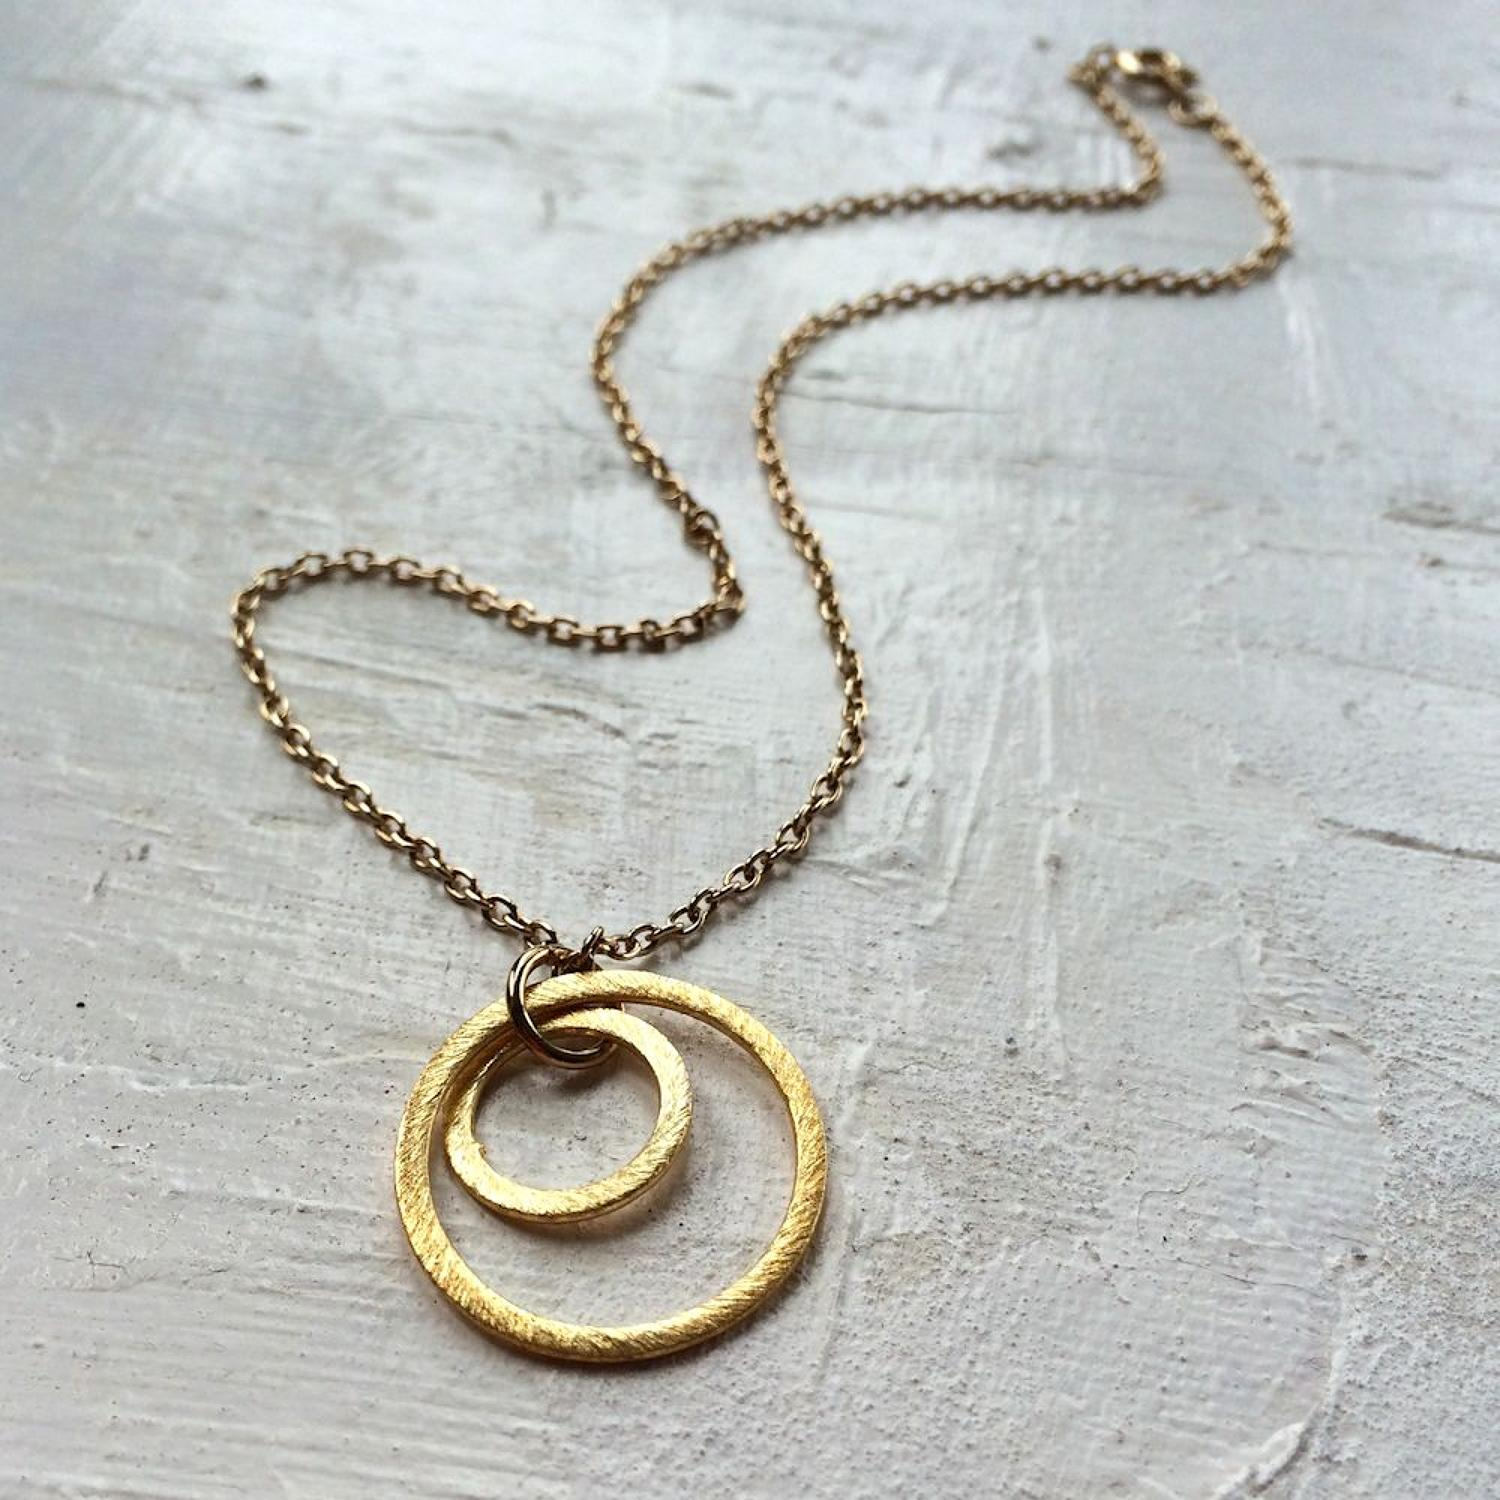 Solar rings necklace